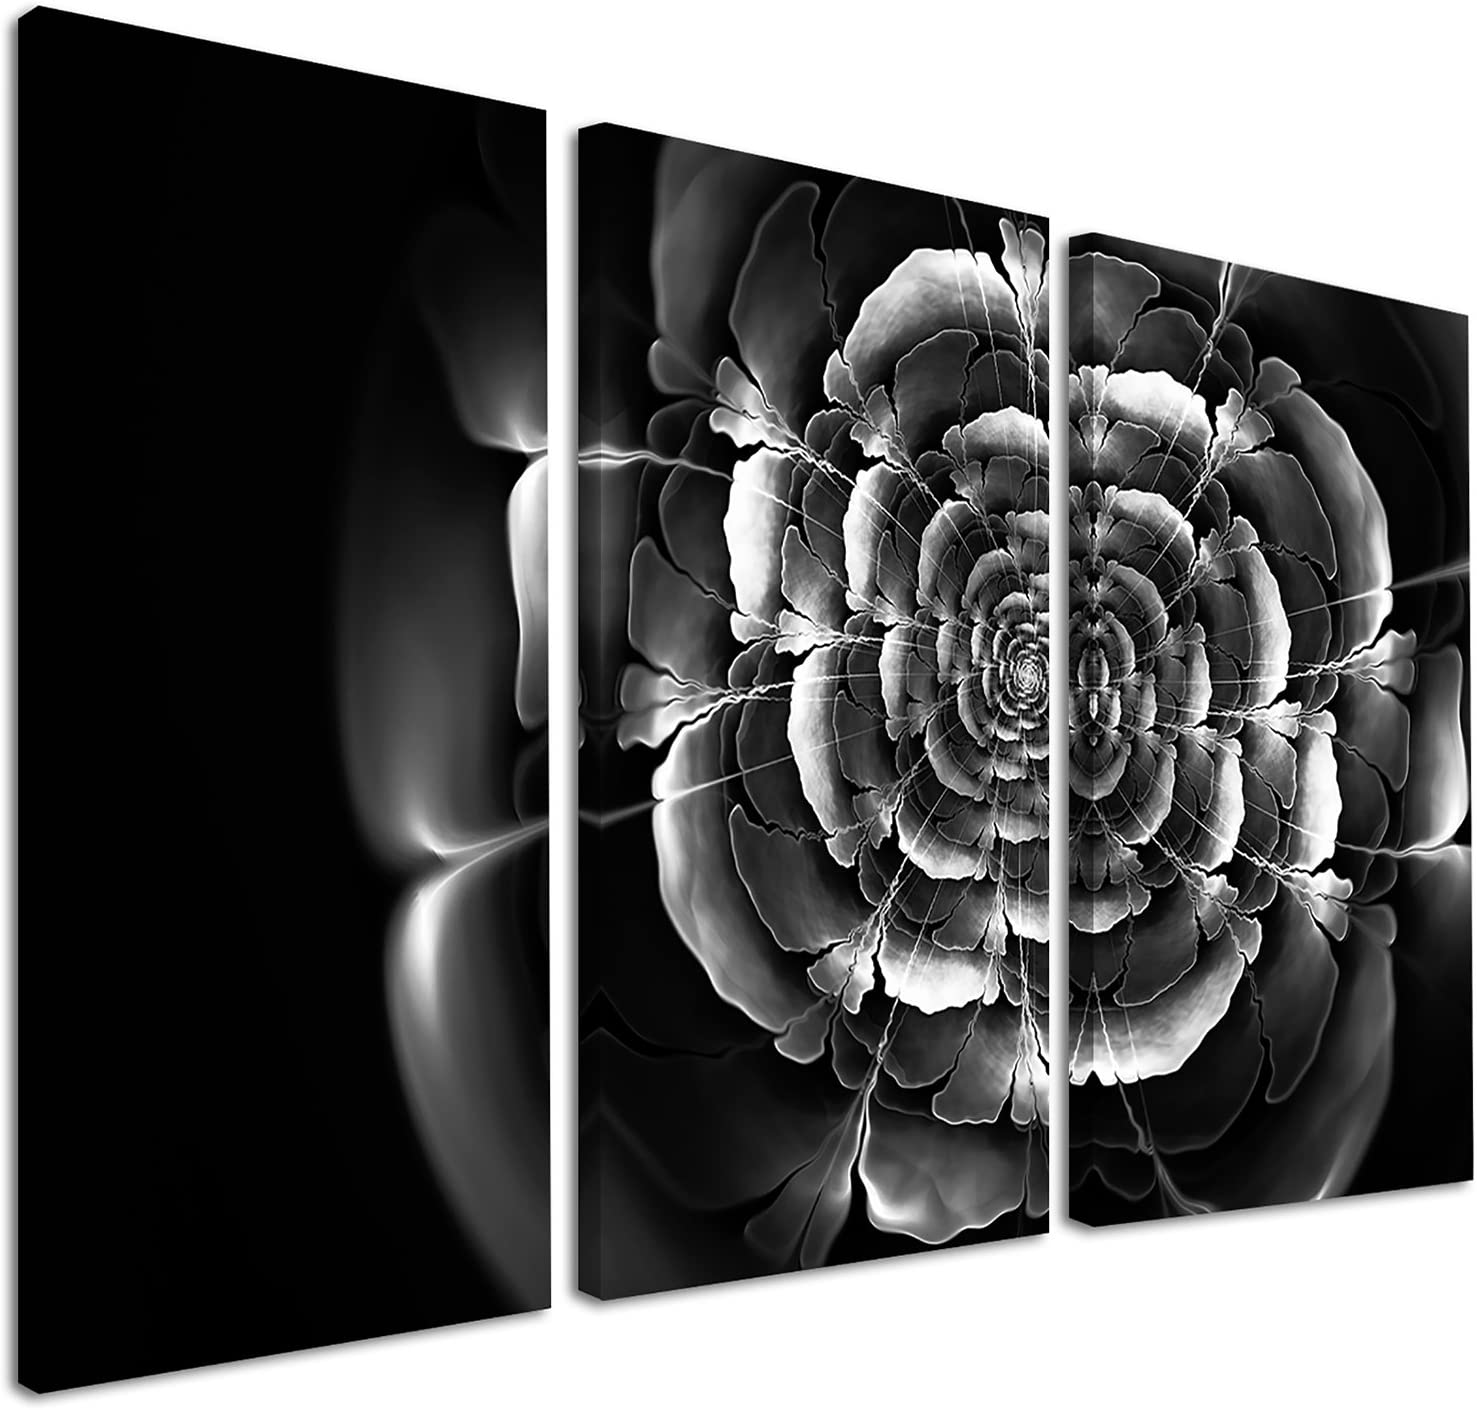 Amazon Com Designart Fractal Silver Rose In Dark Floral Large Abstract Canvas Art Print 36x28in Multipanel 3 Piece 36x28 3 Panels Black Home Kitchen